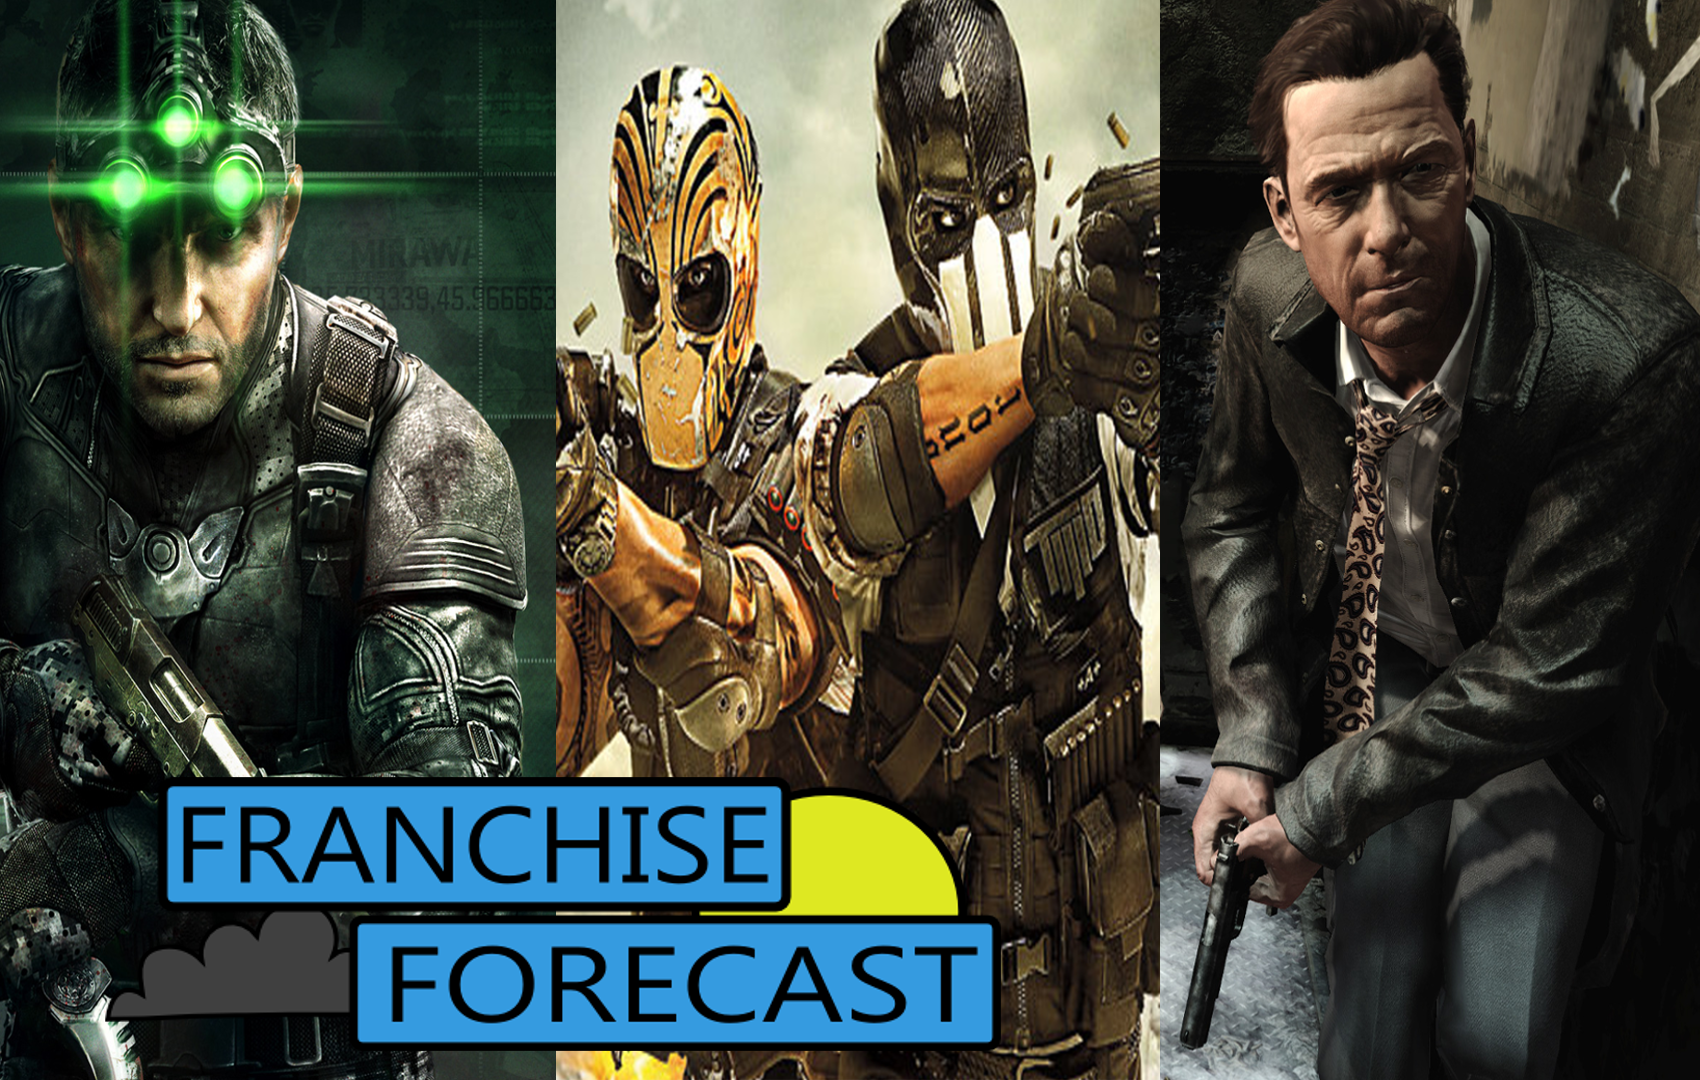 franchiseforecast maxpayne splintercell